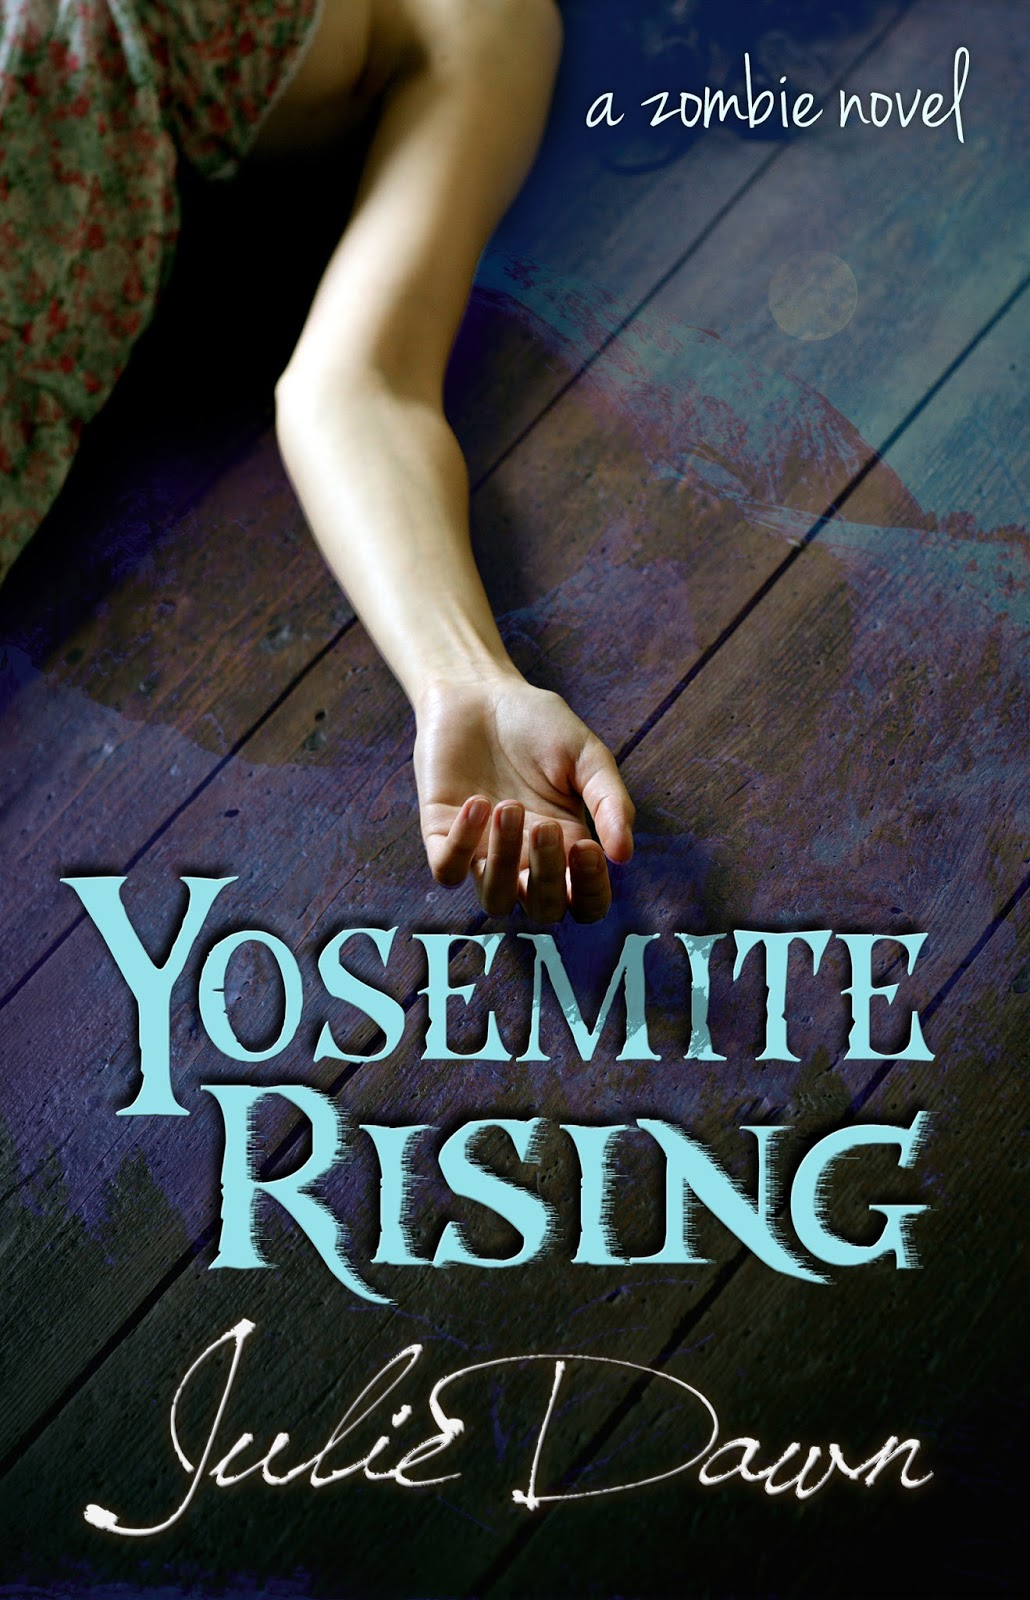 Seasons of reading 2015 yosemite rising a zombie novel by julie dawn 1 signed print copy with custom bookmark us only and 1 ebook epub international two winners fandeluxe Image collections